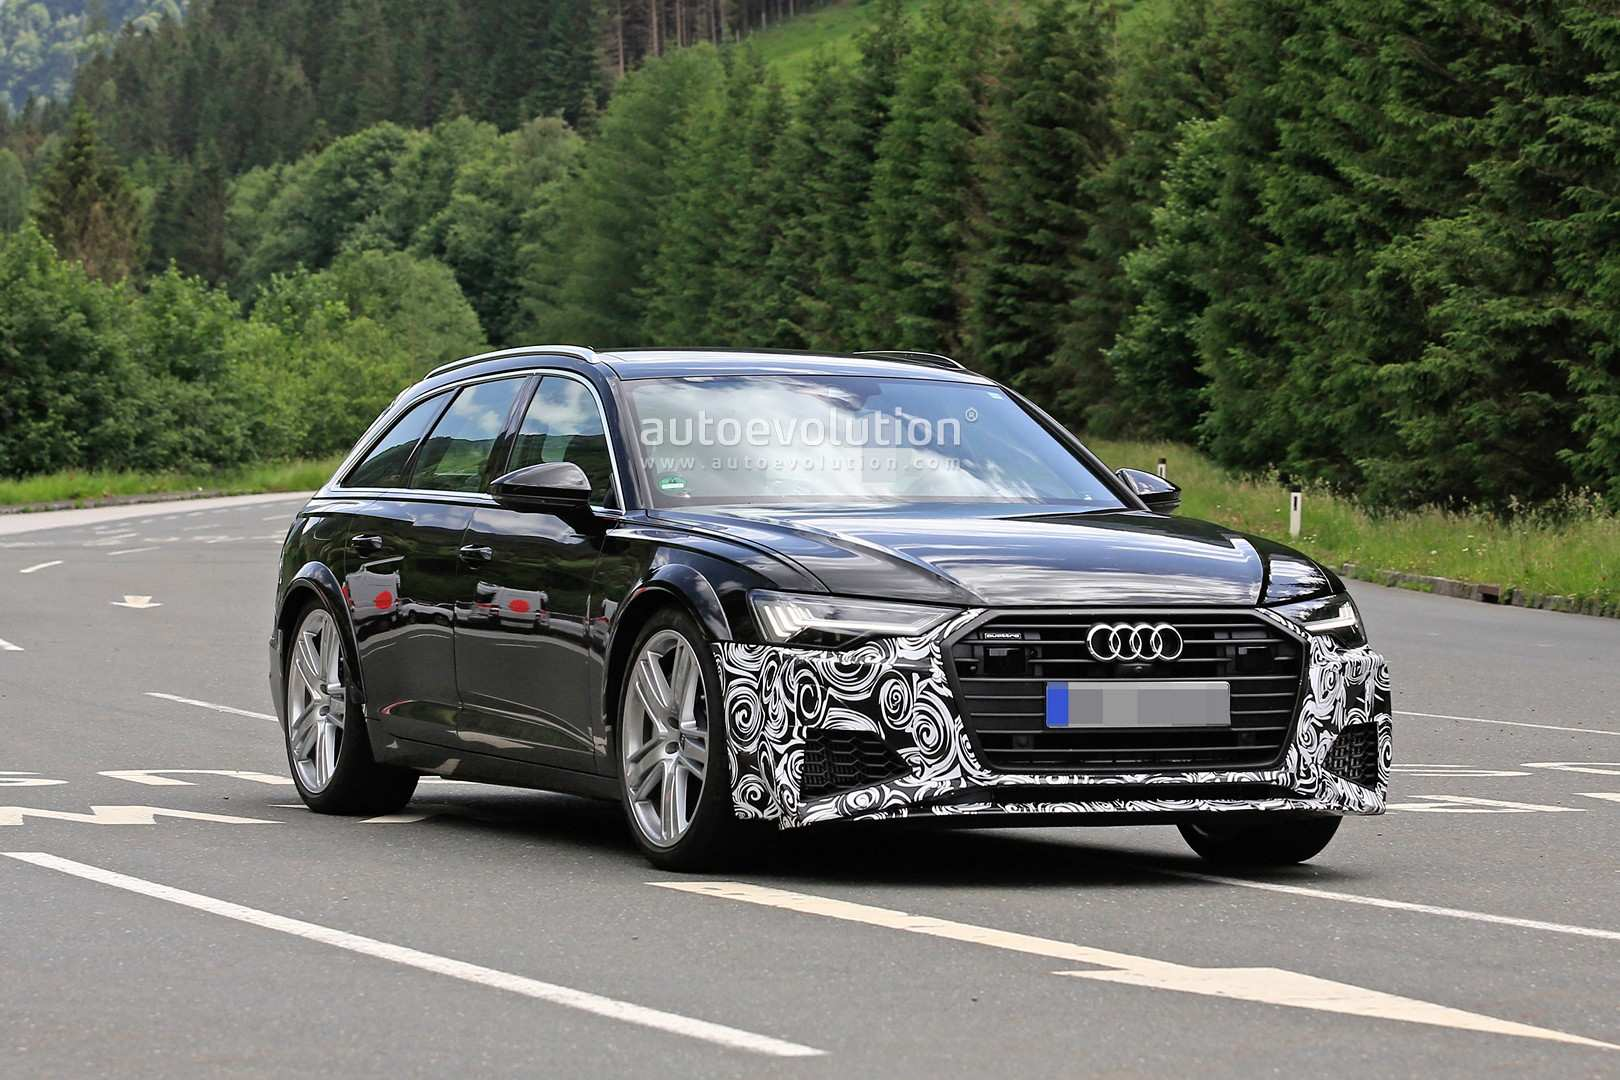 72 A Audi Rs6 2020 Price Design And Review